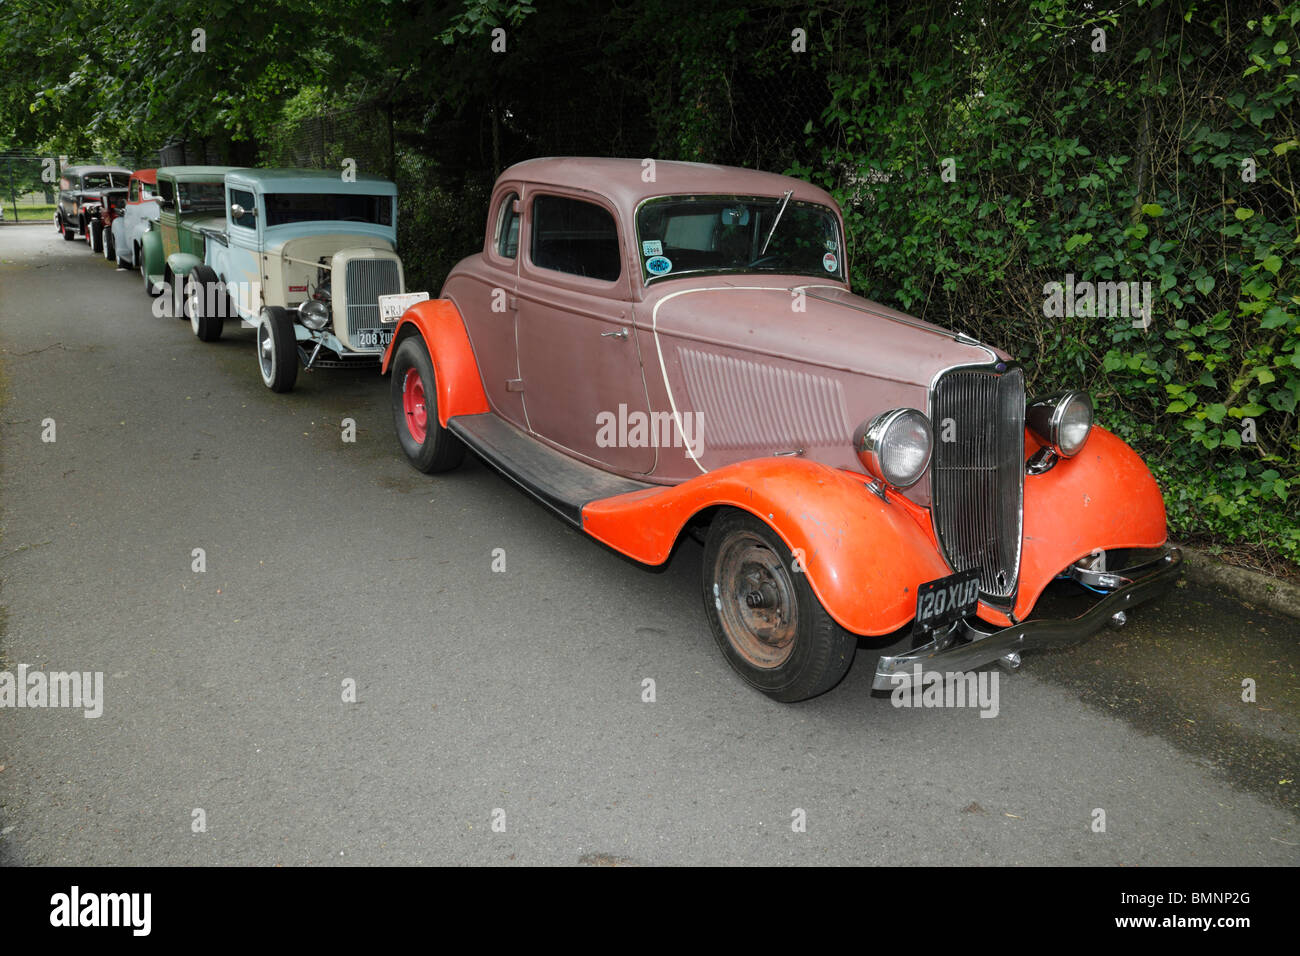 Vintage Hot Rods Stock Photos & Vintage Hot Rods Stock Images - Alamy